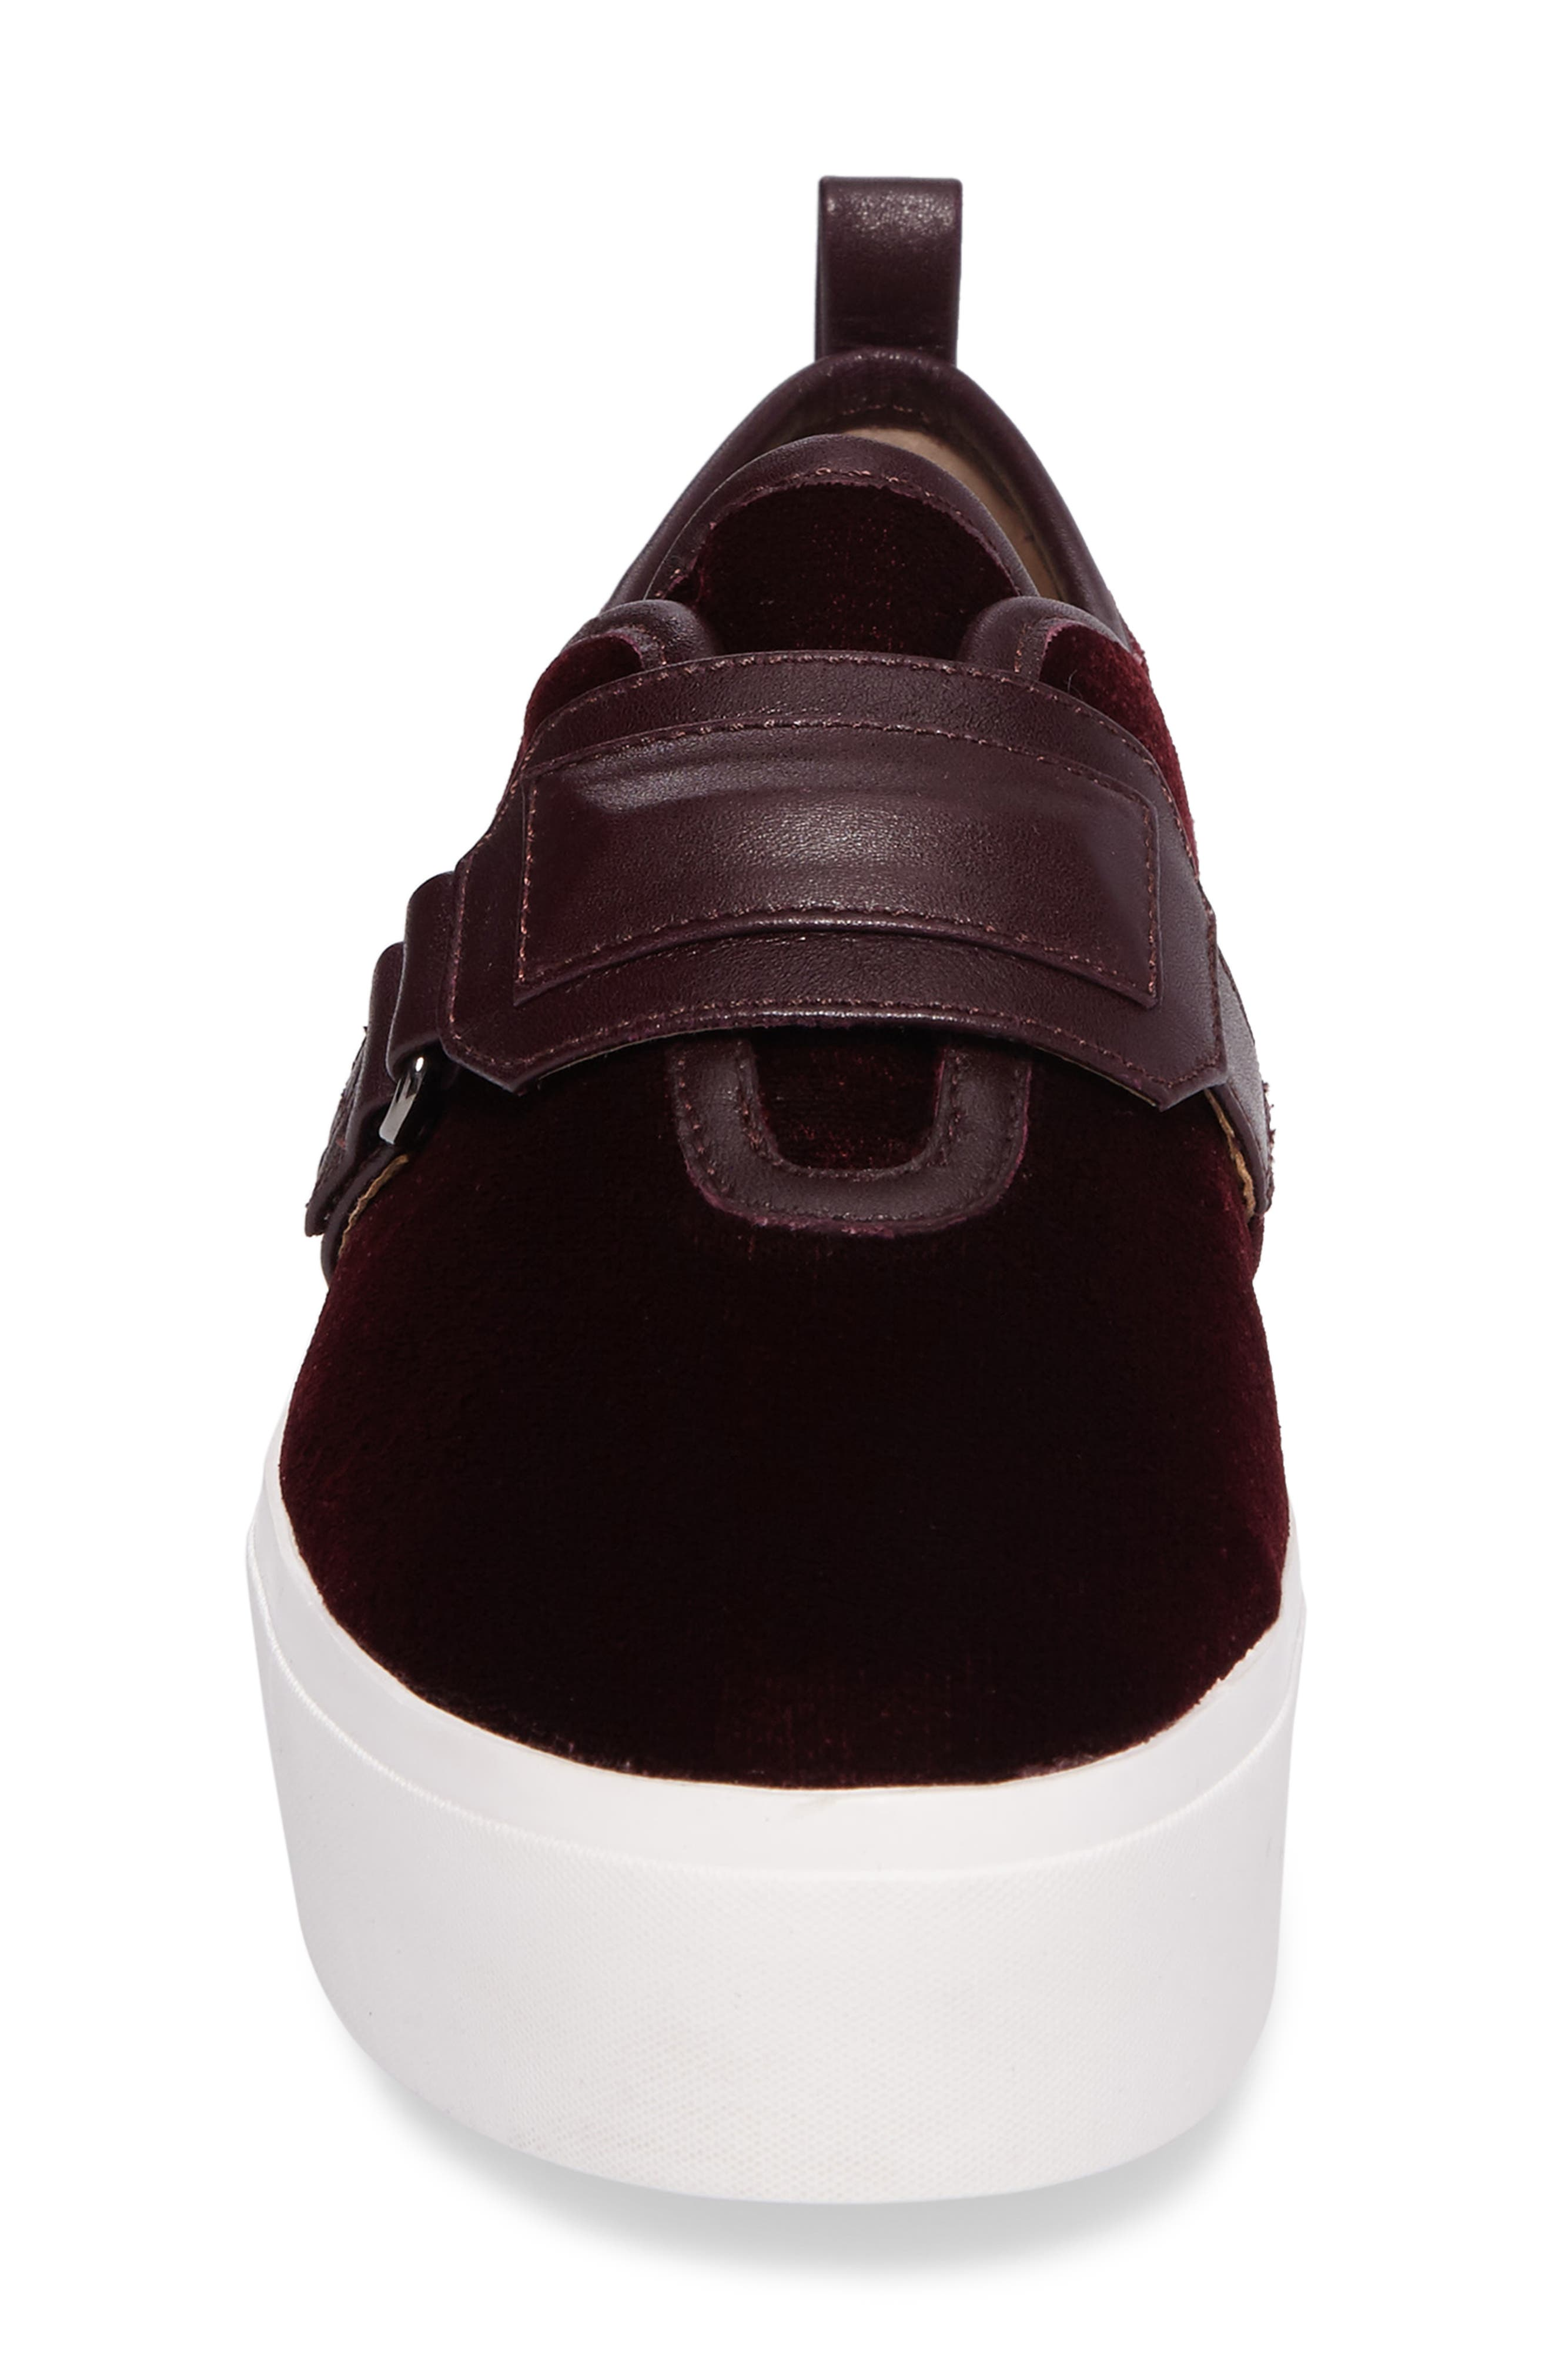 Juno Slip-On Sneaker,                             Alternate thumbnail 8, color,